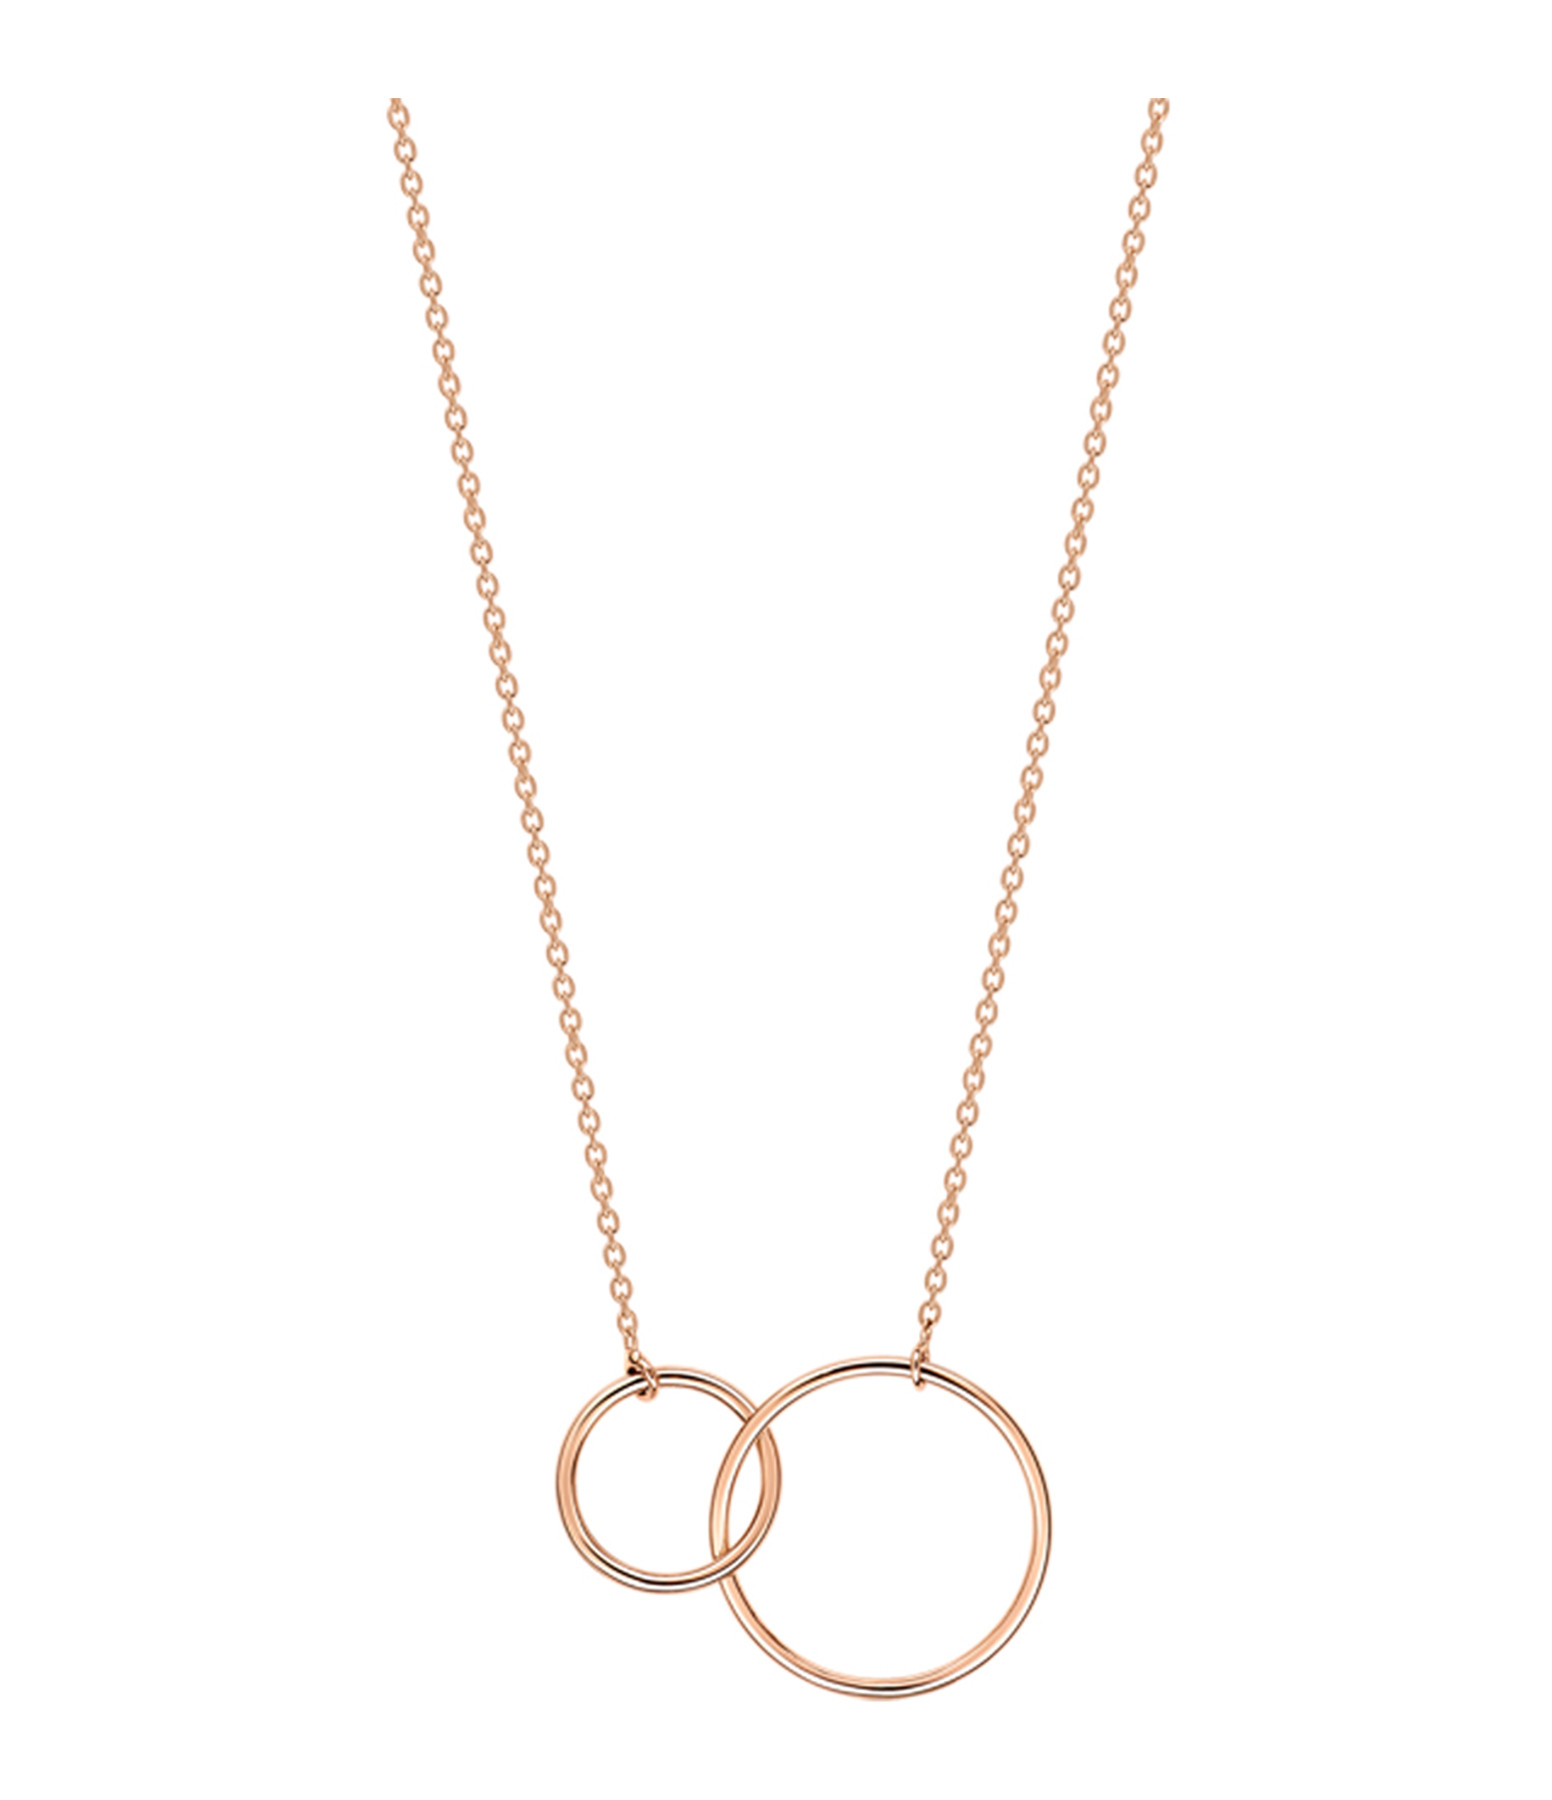 GINETTE NY - Collier Tiny Fusion Or Rose